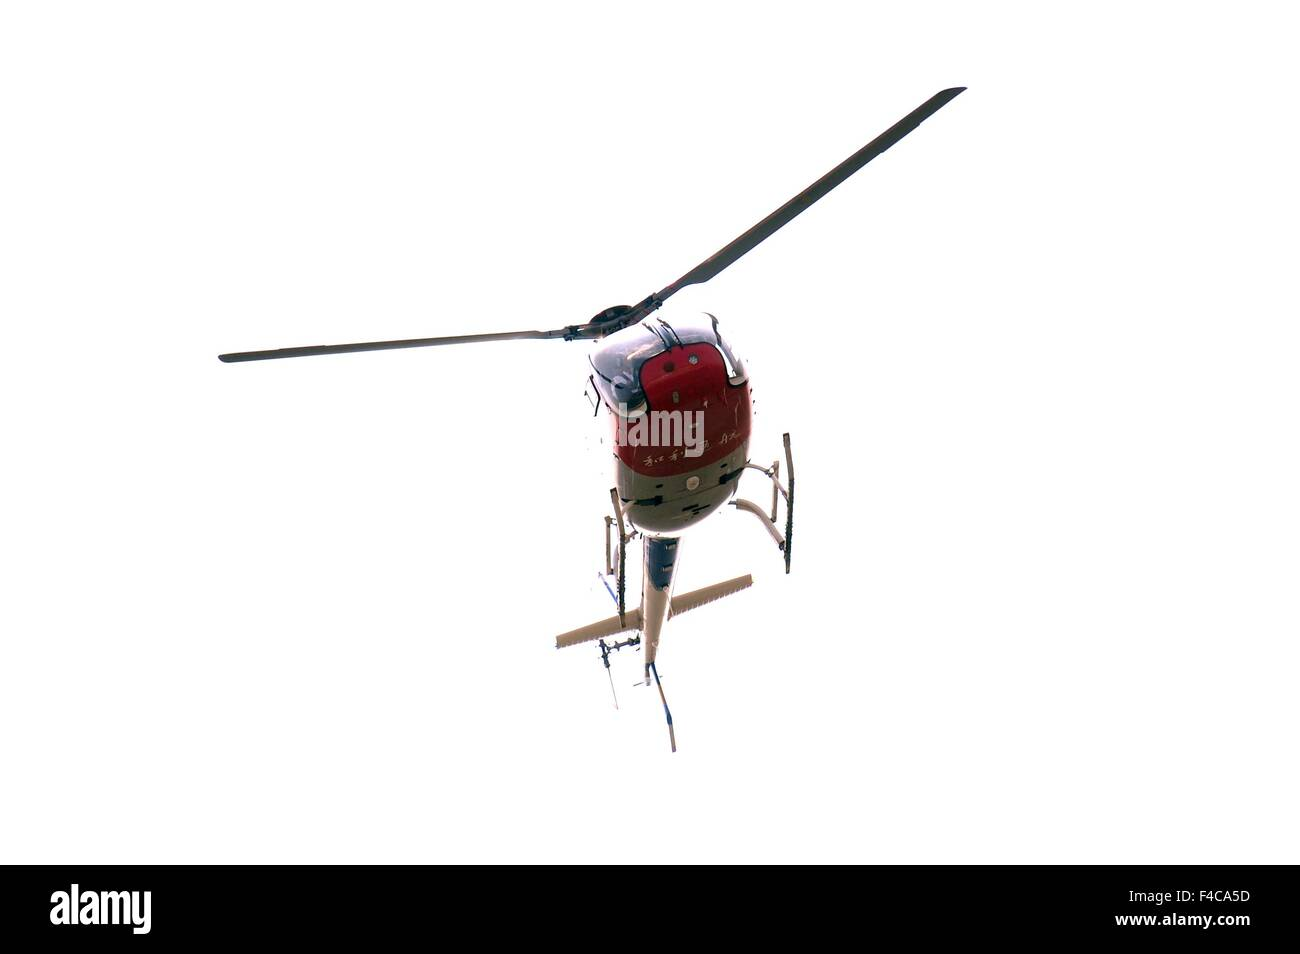 Xi'an, China's Shaanxi Province. 16th Oct, 2015. A helicopter takes part in an aerobatics performance at - Stock Image